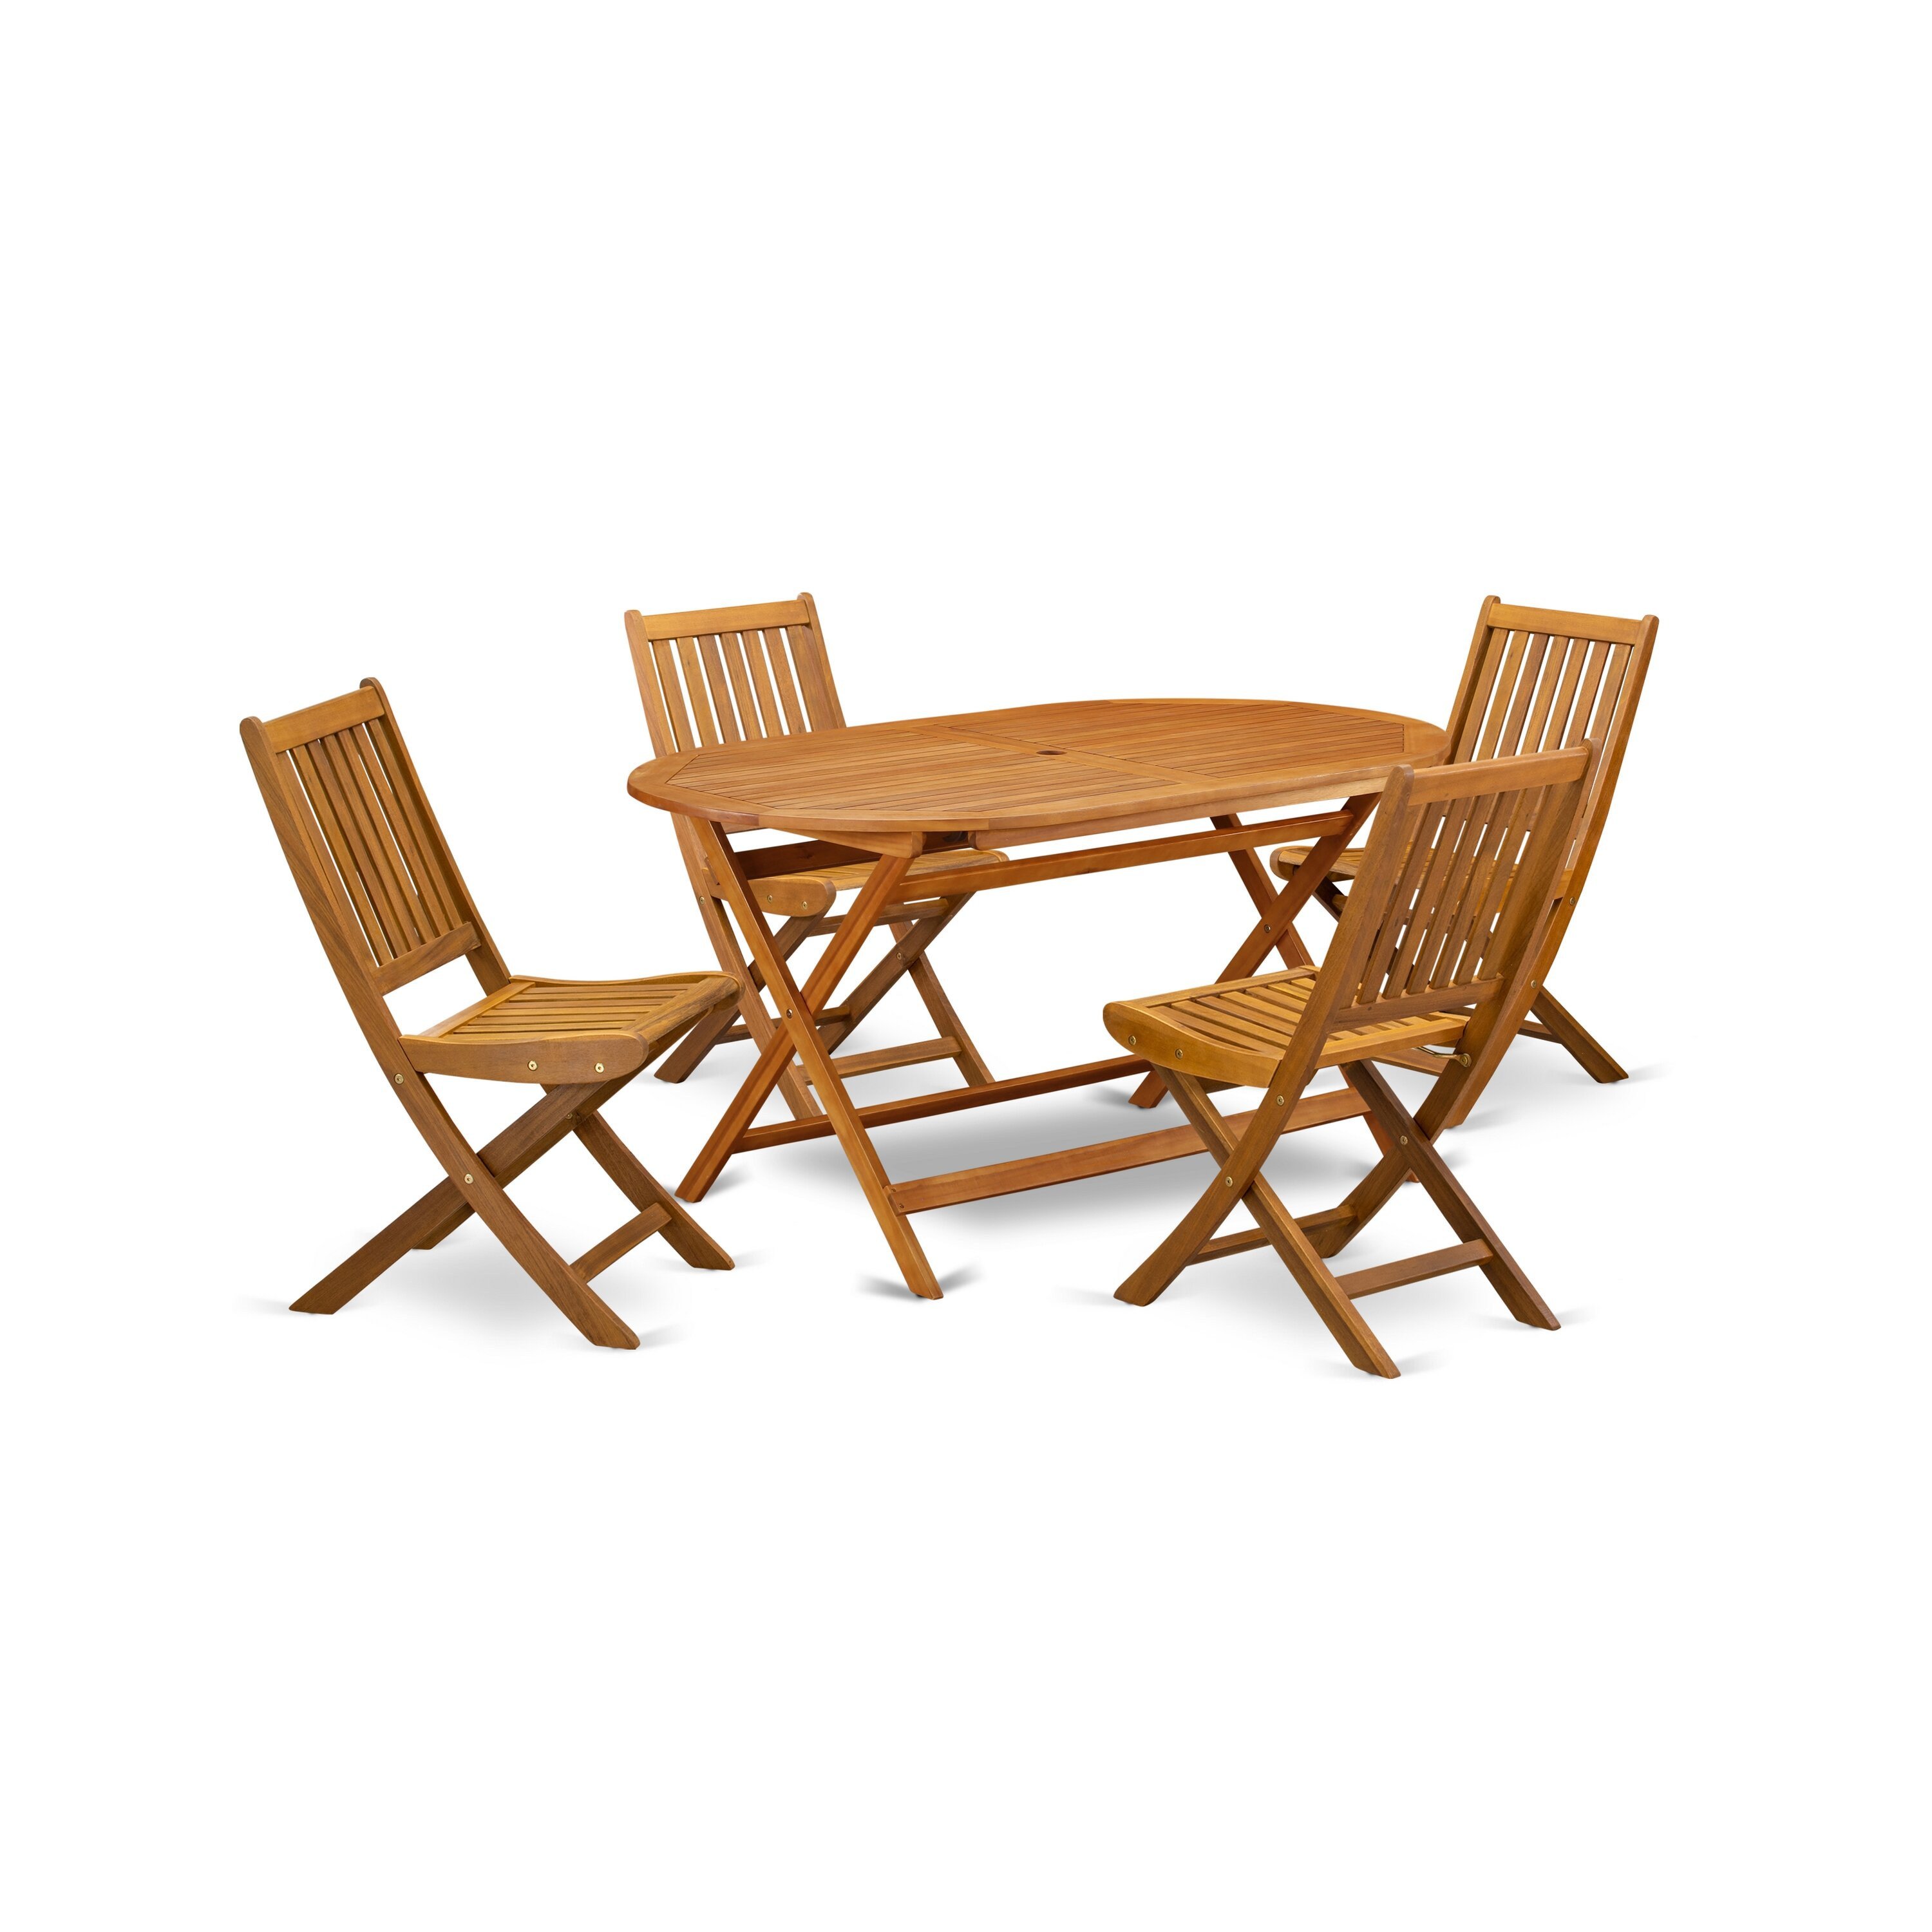 Portable Durable Sets Of Square Dining Table With 2 Chairs Aneken Folding Table And Chairs Set Outdoor Rattan 3 Pieces Patio Bistro Sets For Camping Balcony Garden Yard Outside And Indoor Black Bistro Sets Kolenik Patio